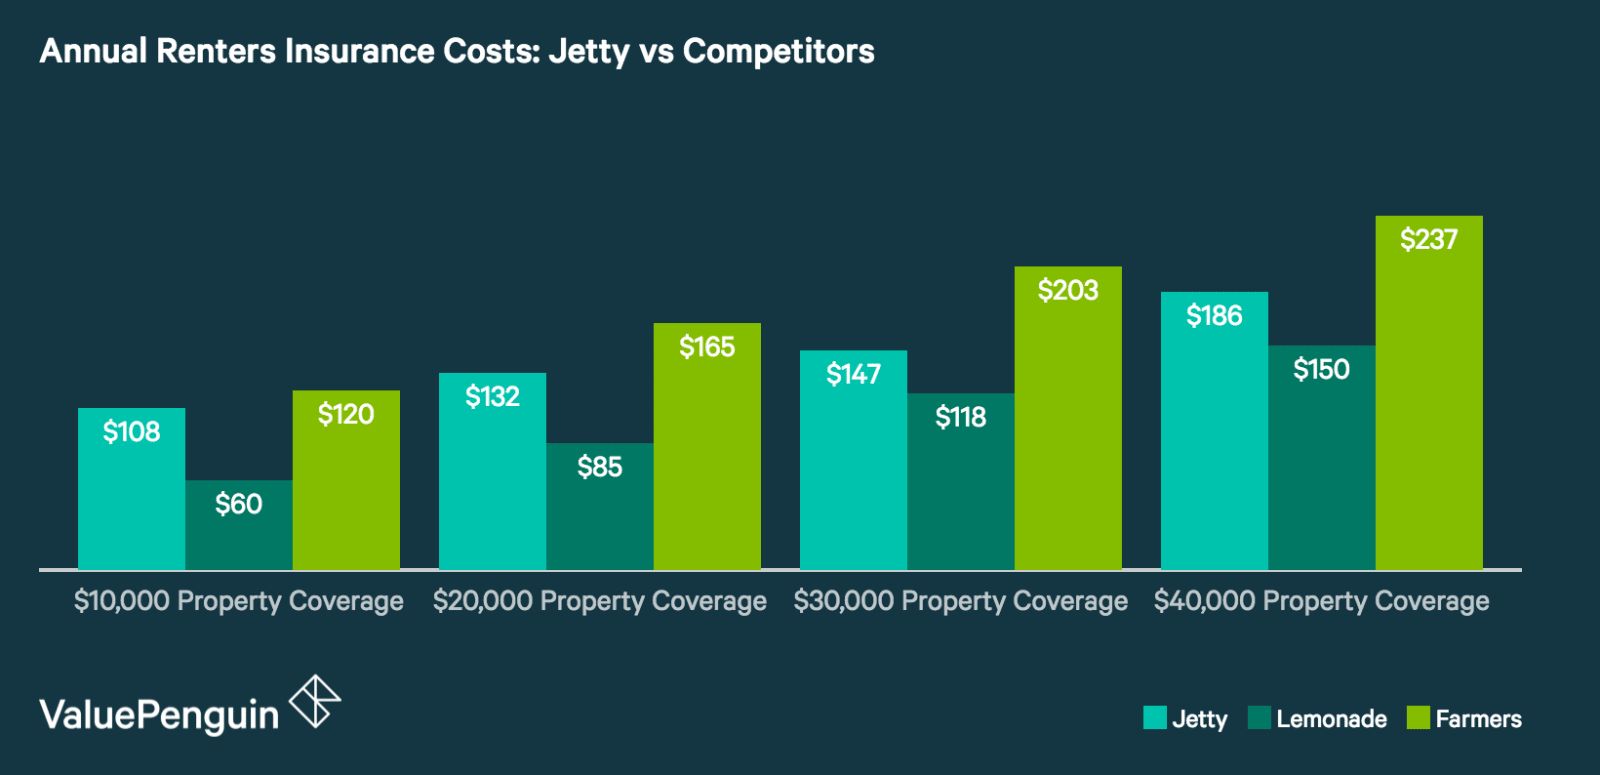 Jetty Insurance Review: A Mix of Great Rates and Excellent Customer